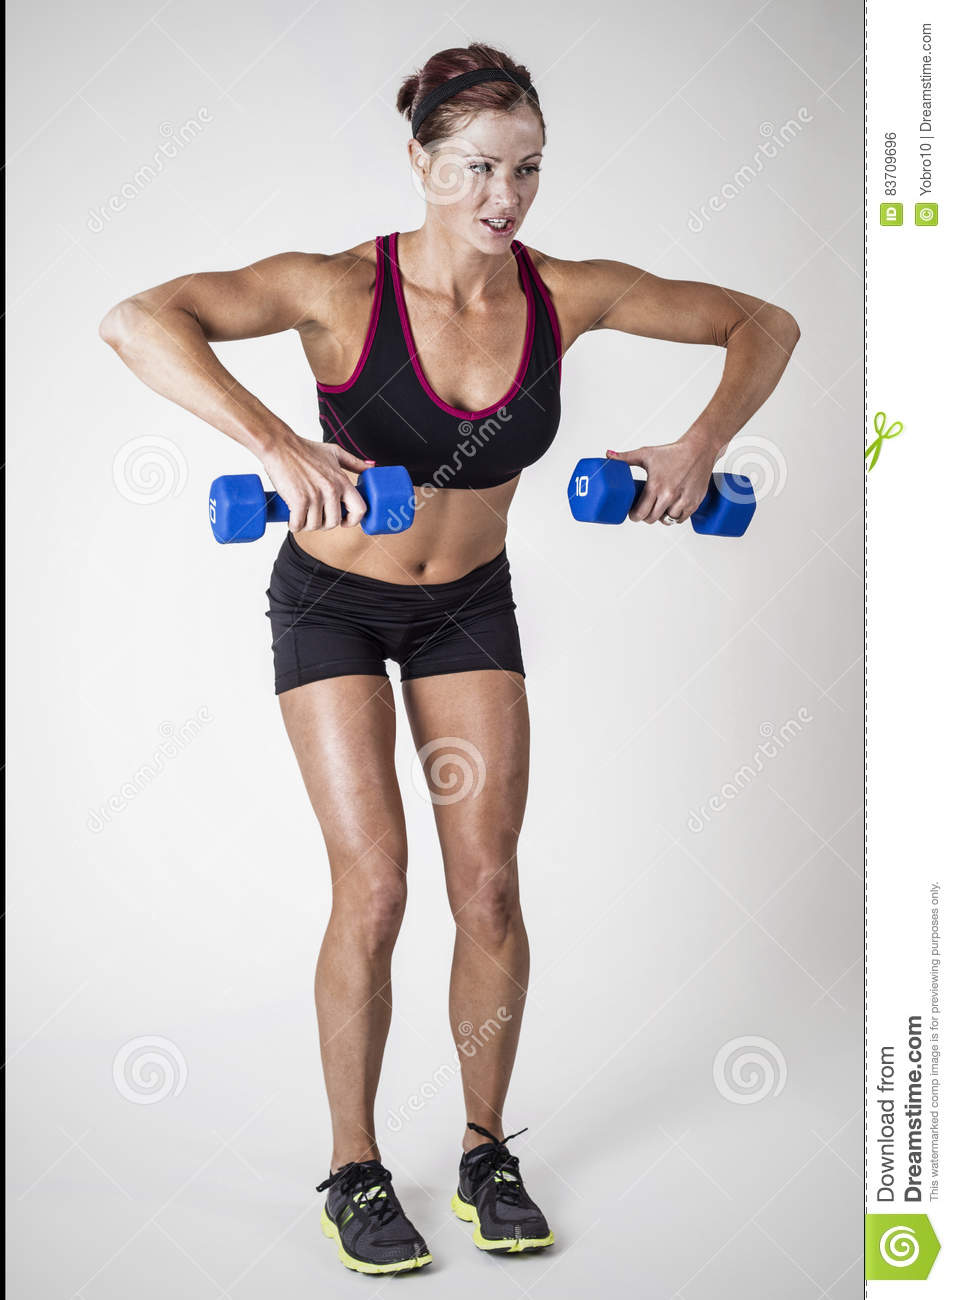 Strong Beautiful Fitness Woman Lifting Dumbbell Weights Stock Photo